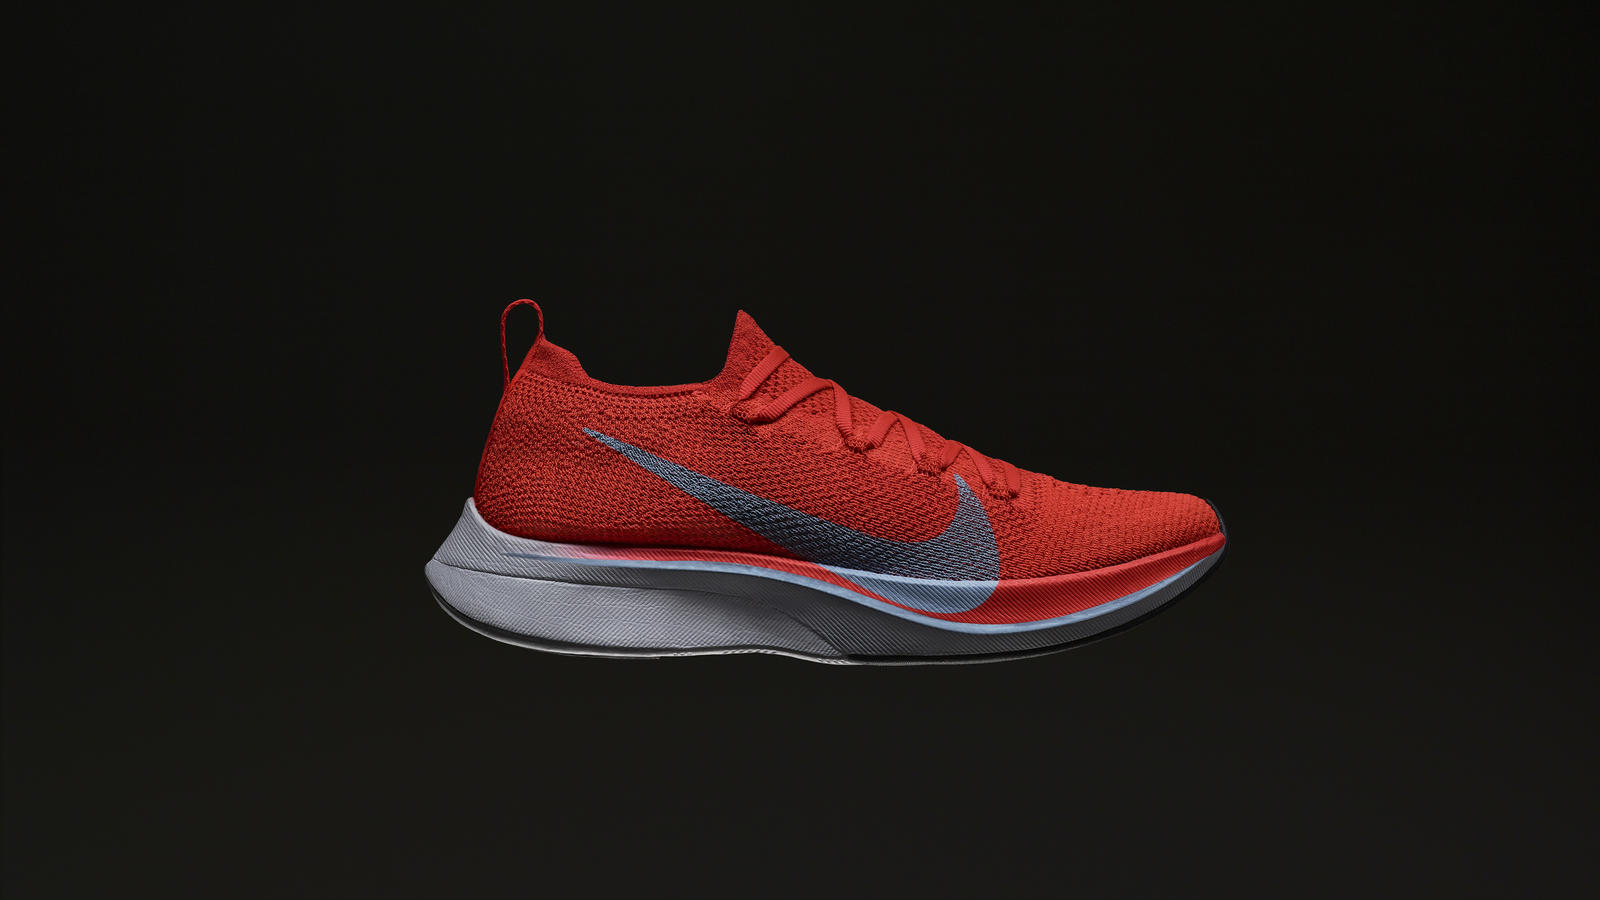 38259d231c751 How to Get the Nike Zoom Vaporfly 4% - Nike News